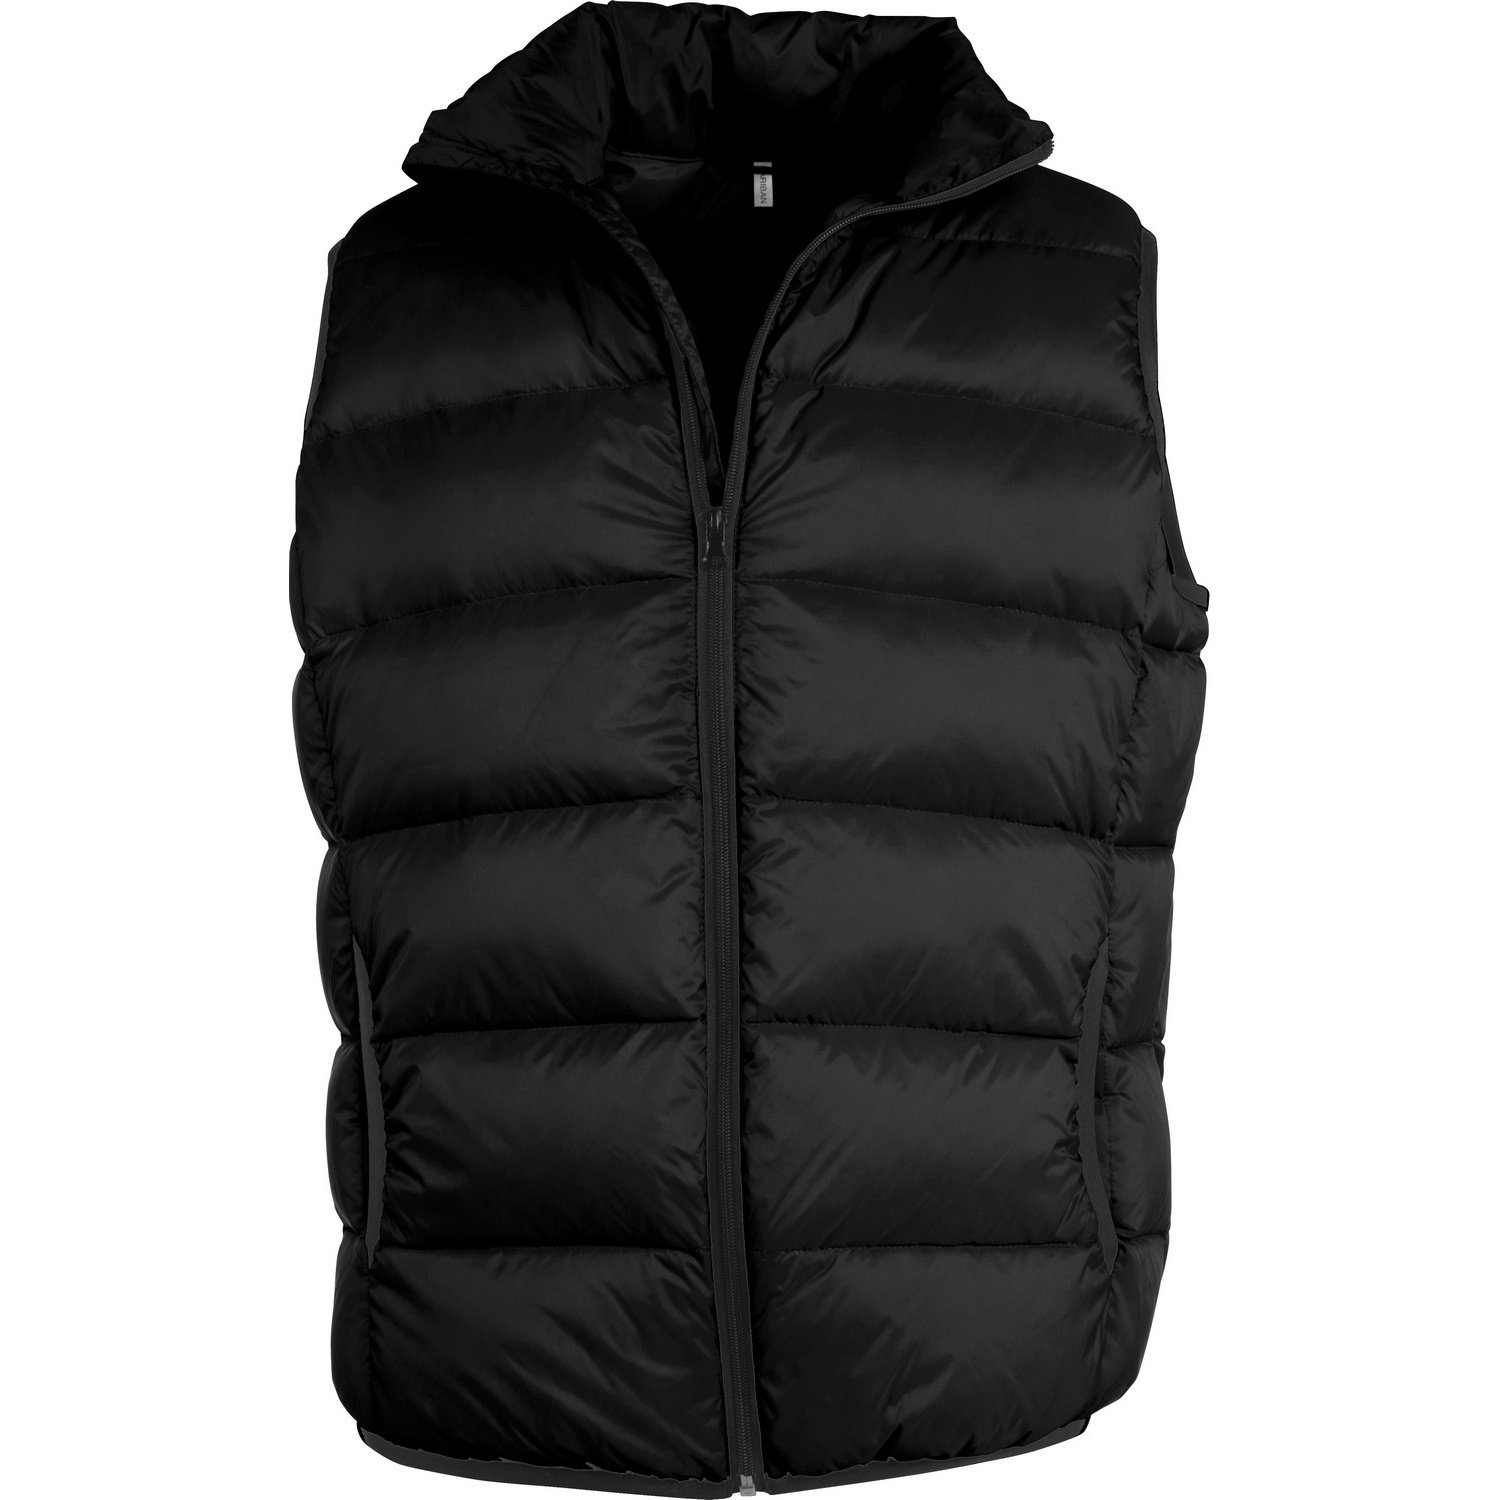 Kariban Herren Ultra Light Bodywarmer/Gilet, gesteppt: Amazon.de: Bekleidung